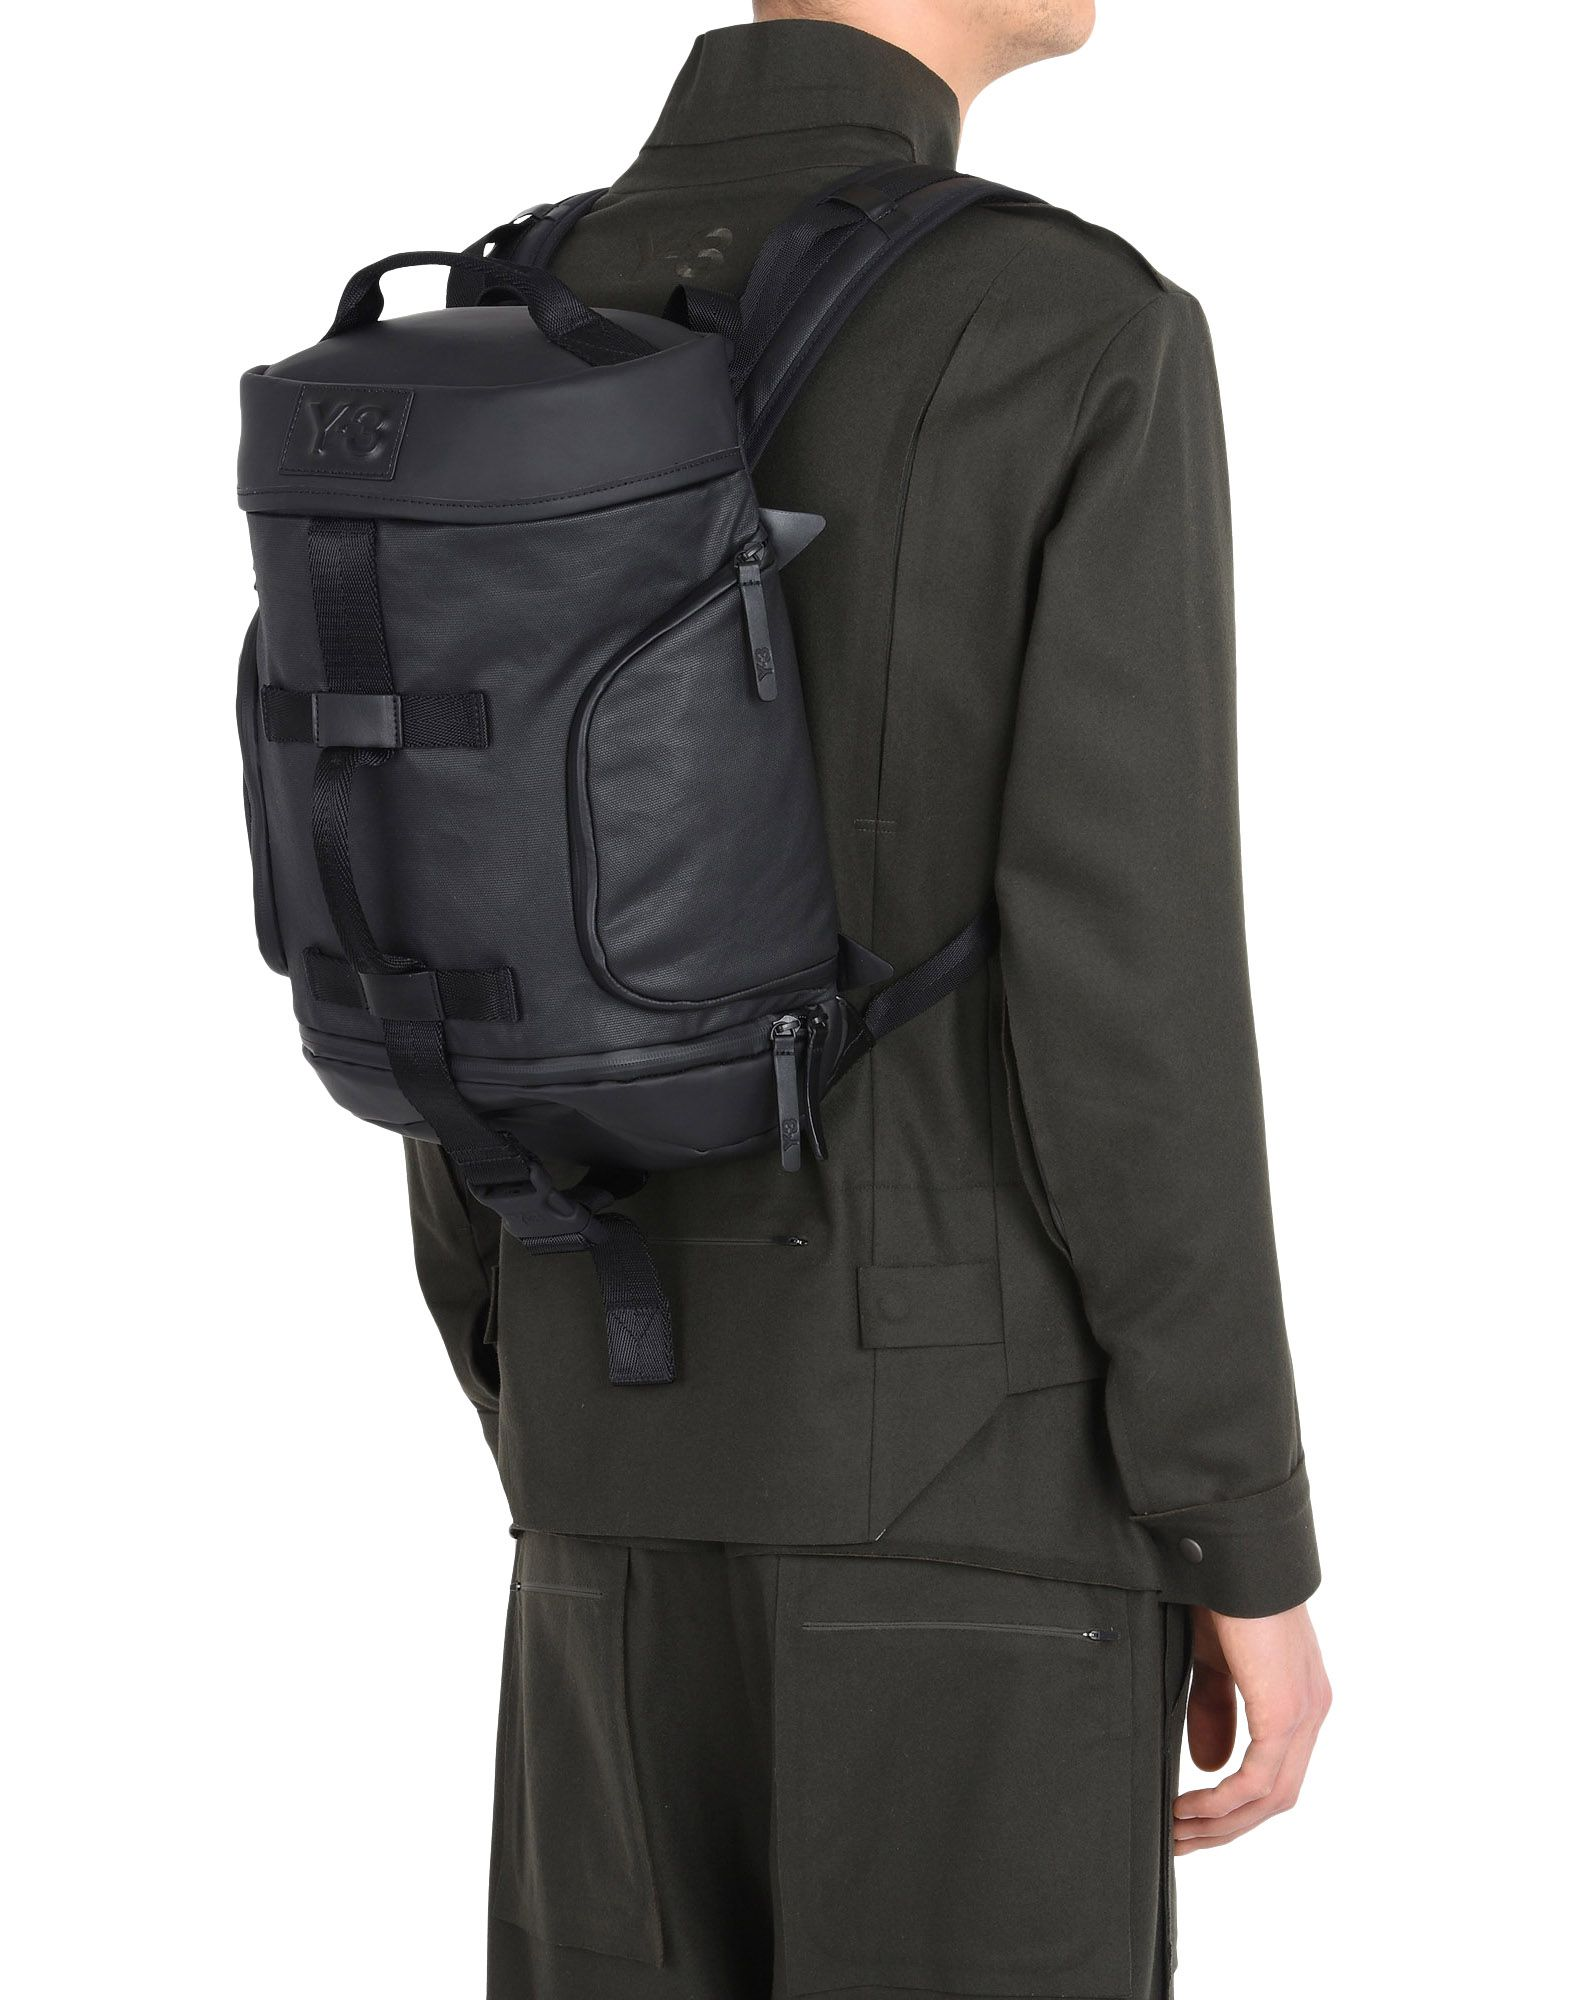 ... Y-3 Y-3 ICON BACKPACK SMALL Backpack E r ... 6492815aba2a4